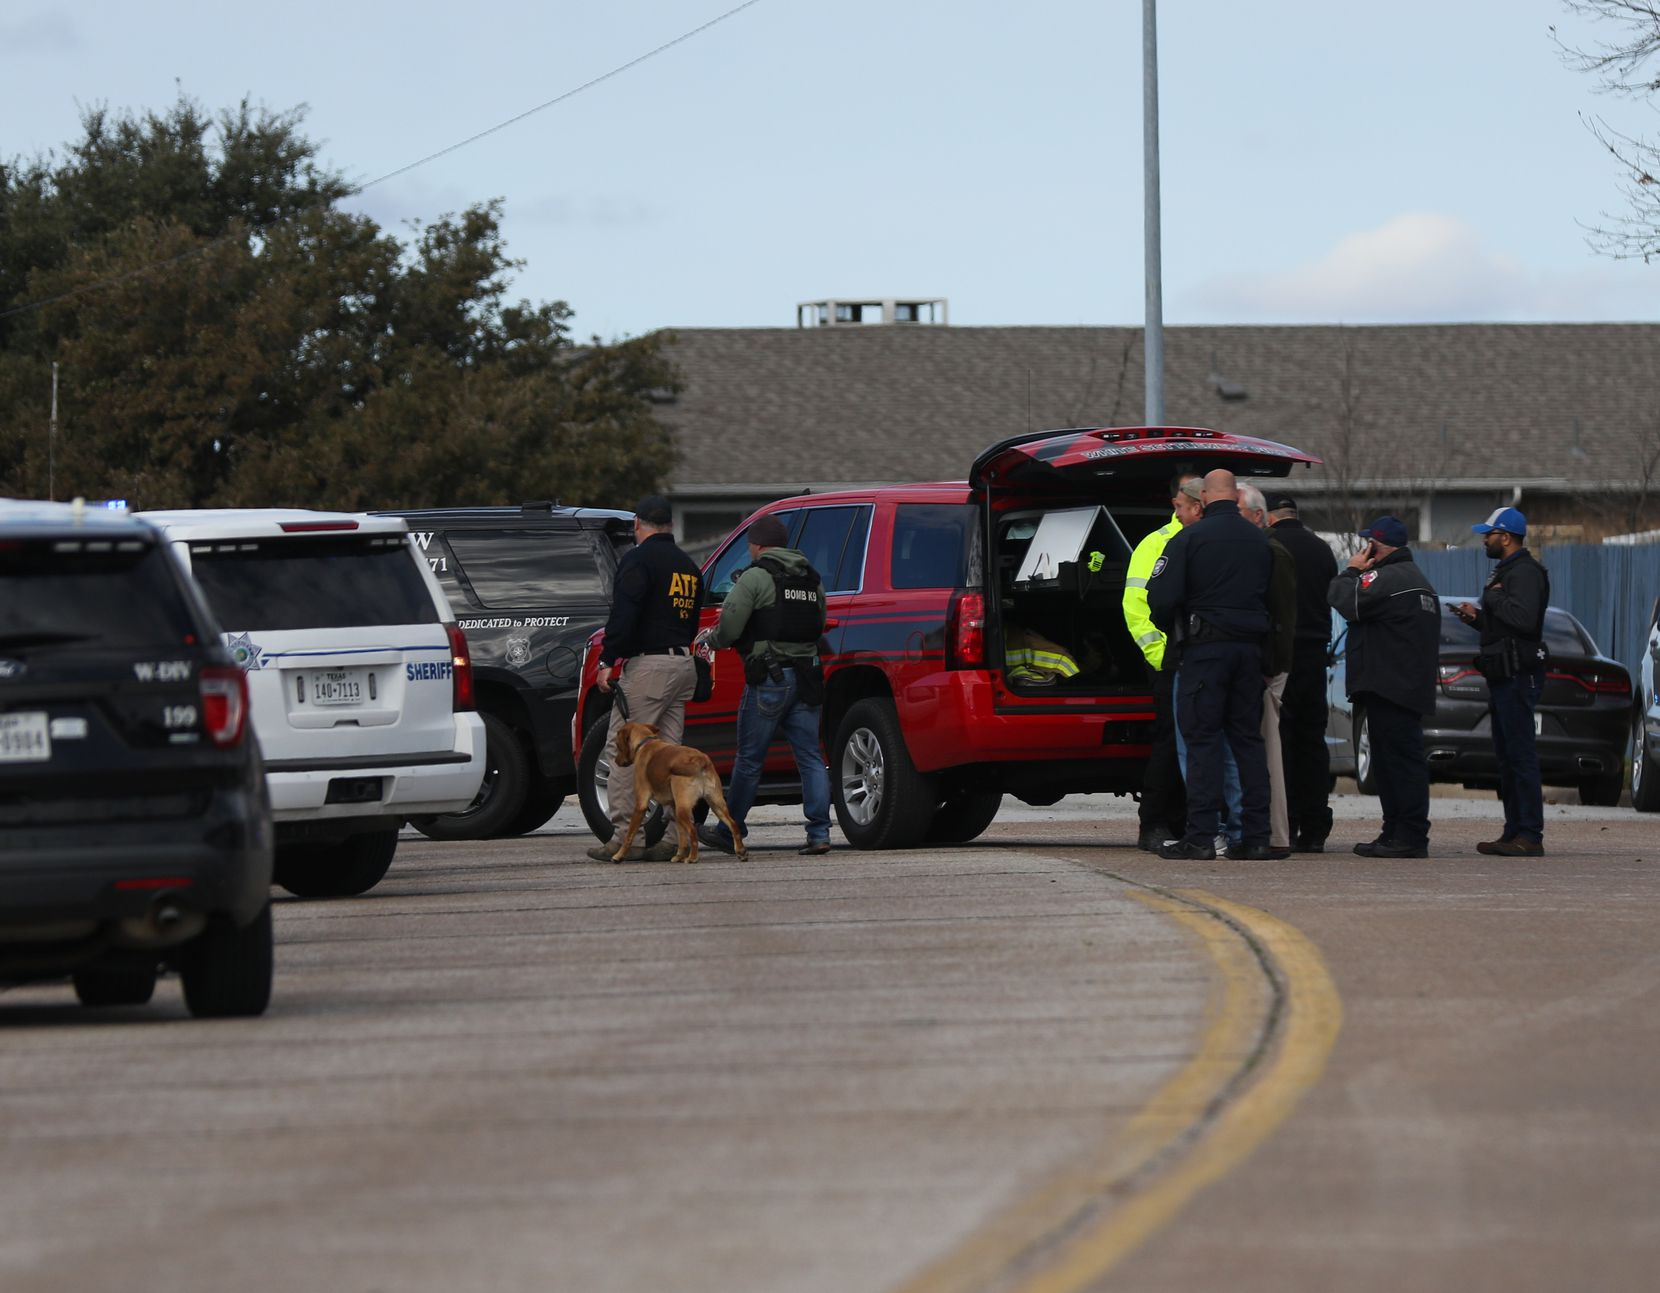 An agent with the Bureau of Alcohol, Tobacco, Firearms and Explosives is seen with a dog at the scene of a shooting at the West Freeway Church of Christ on Sunday.